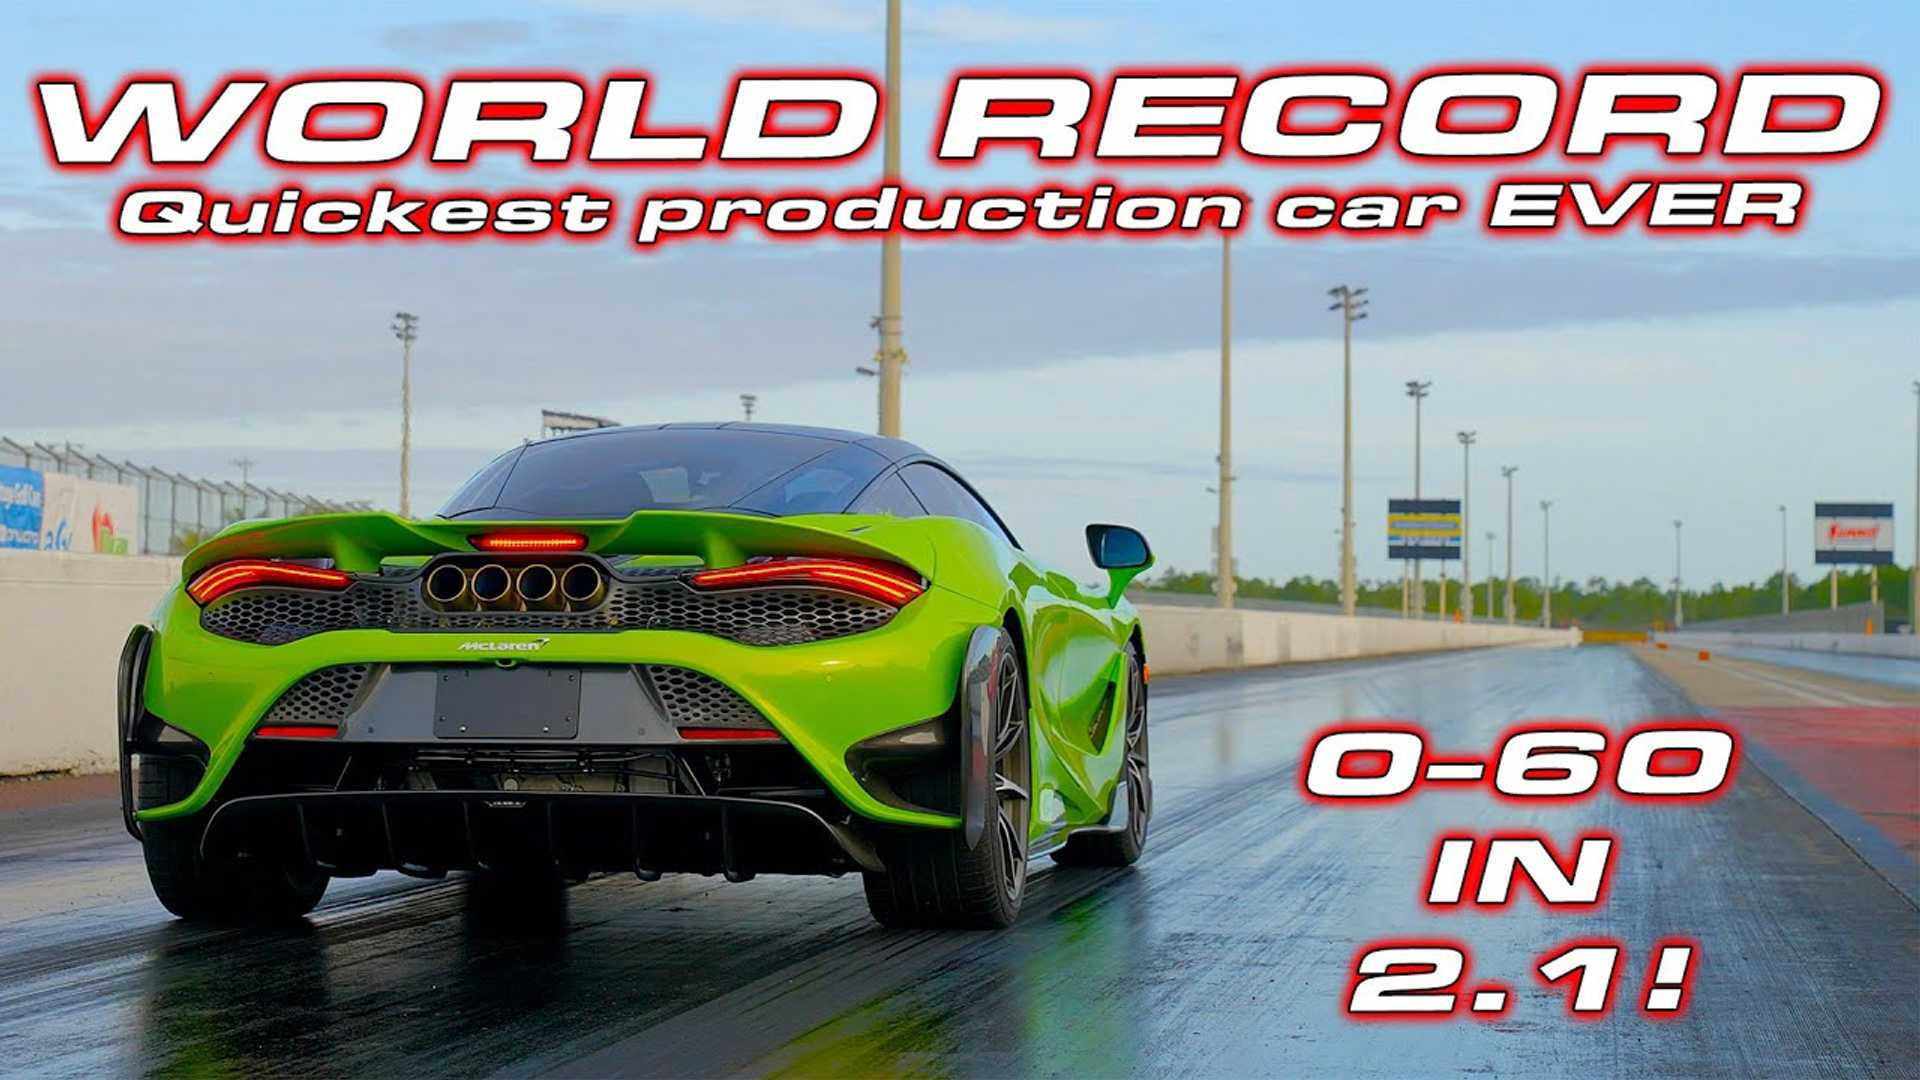 Stock McLaren 765LT With Track Tires Does Quarter Mile In 9.33 Seconds